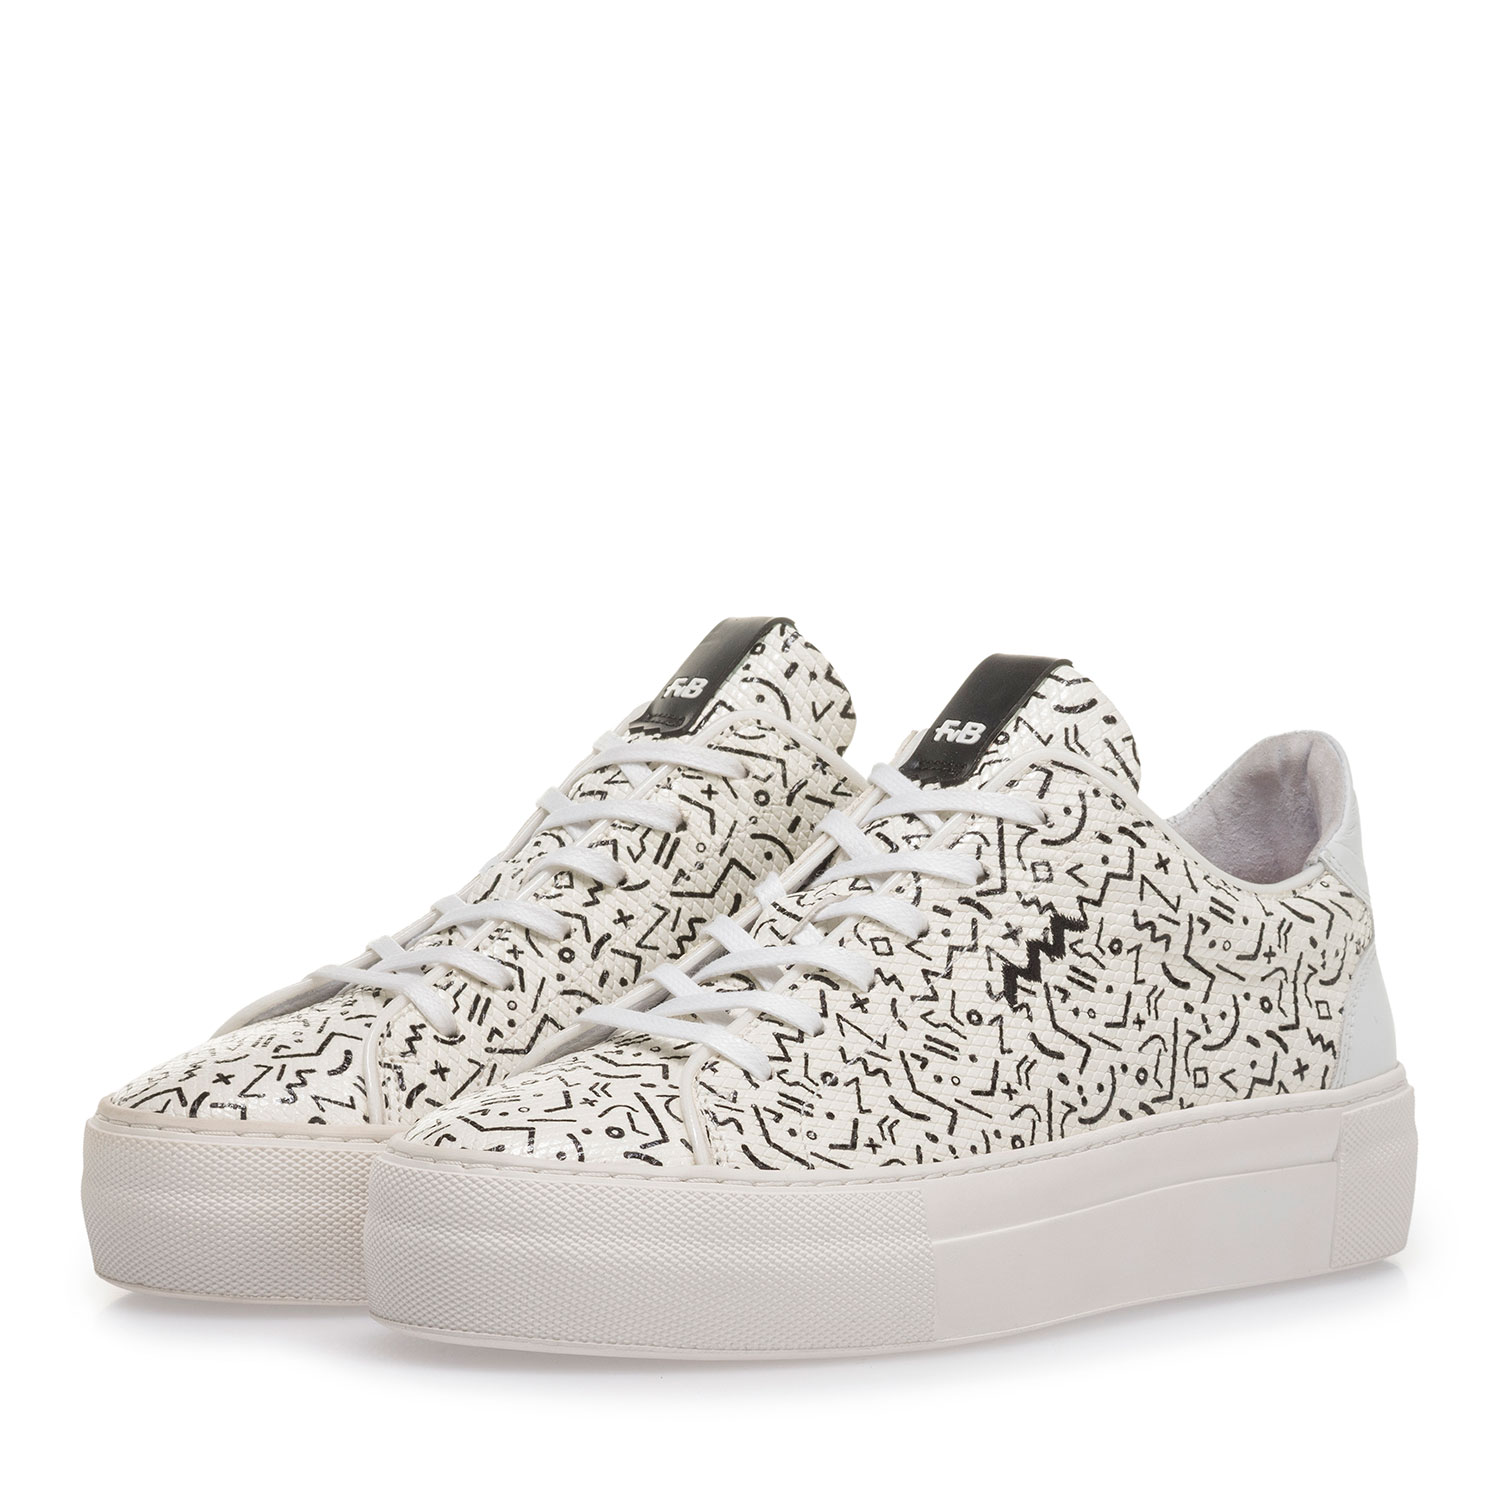 85297/02 - White leather sneaker with black print